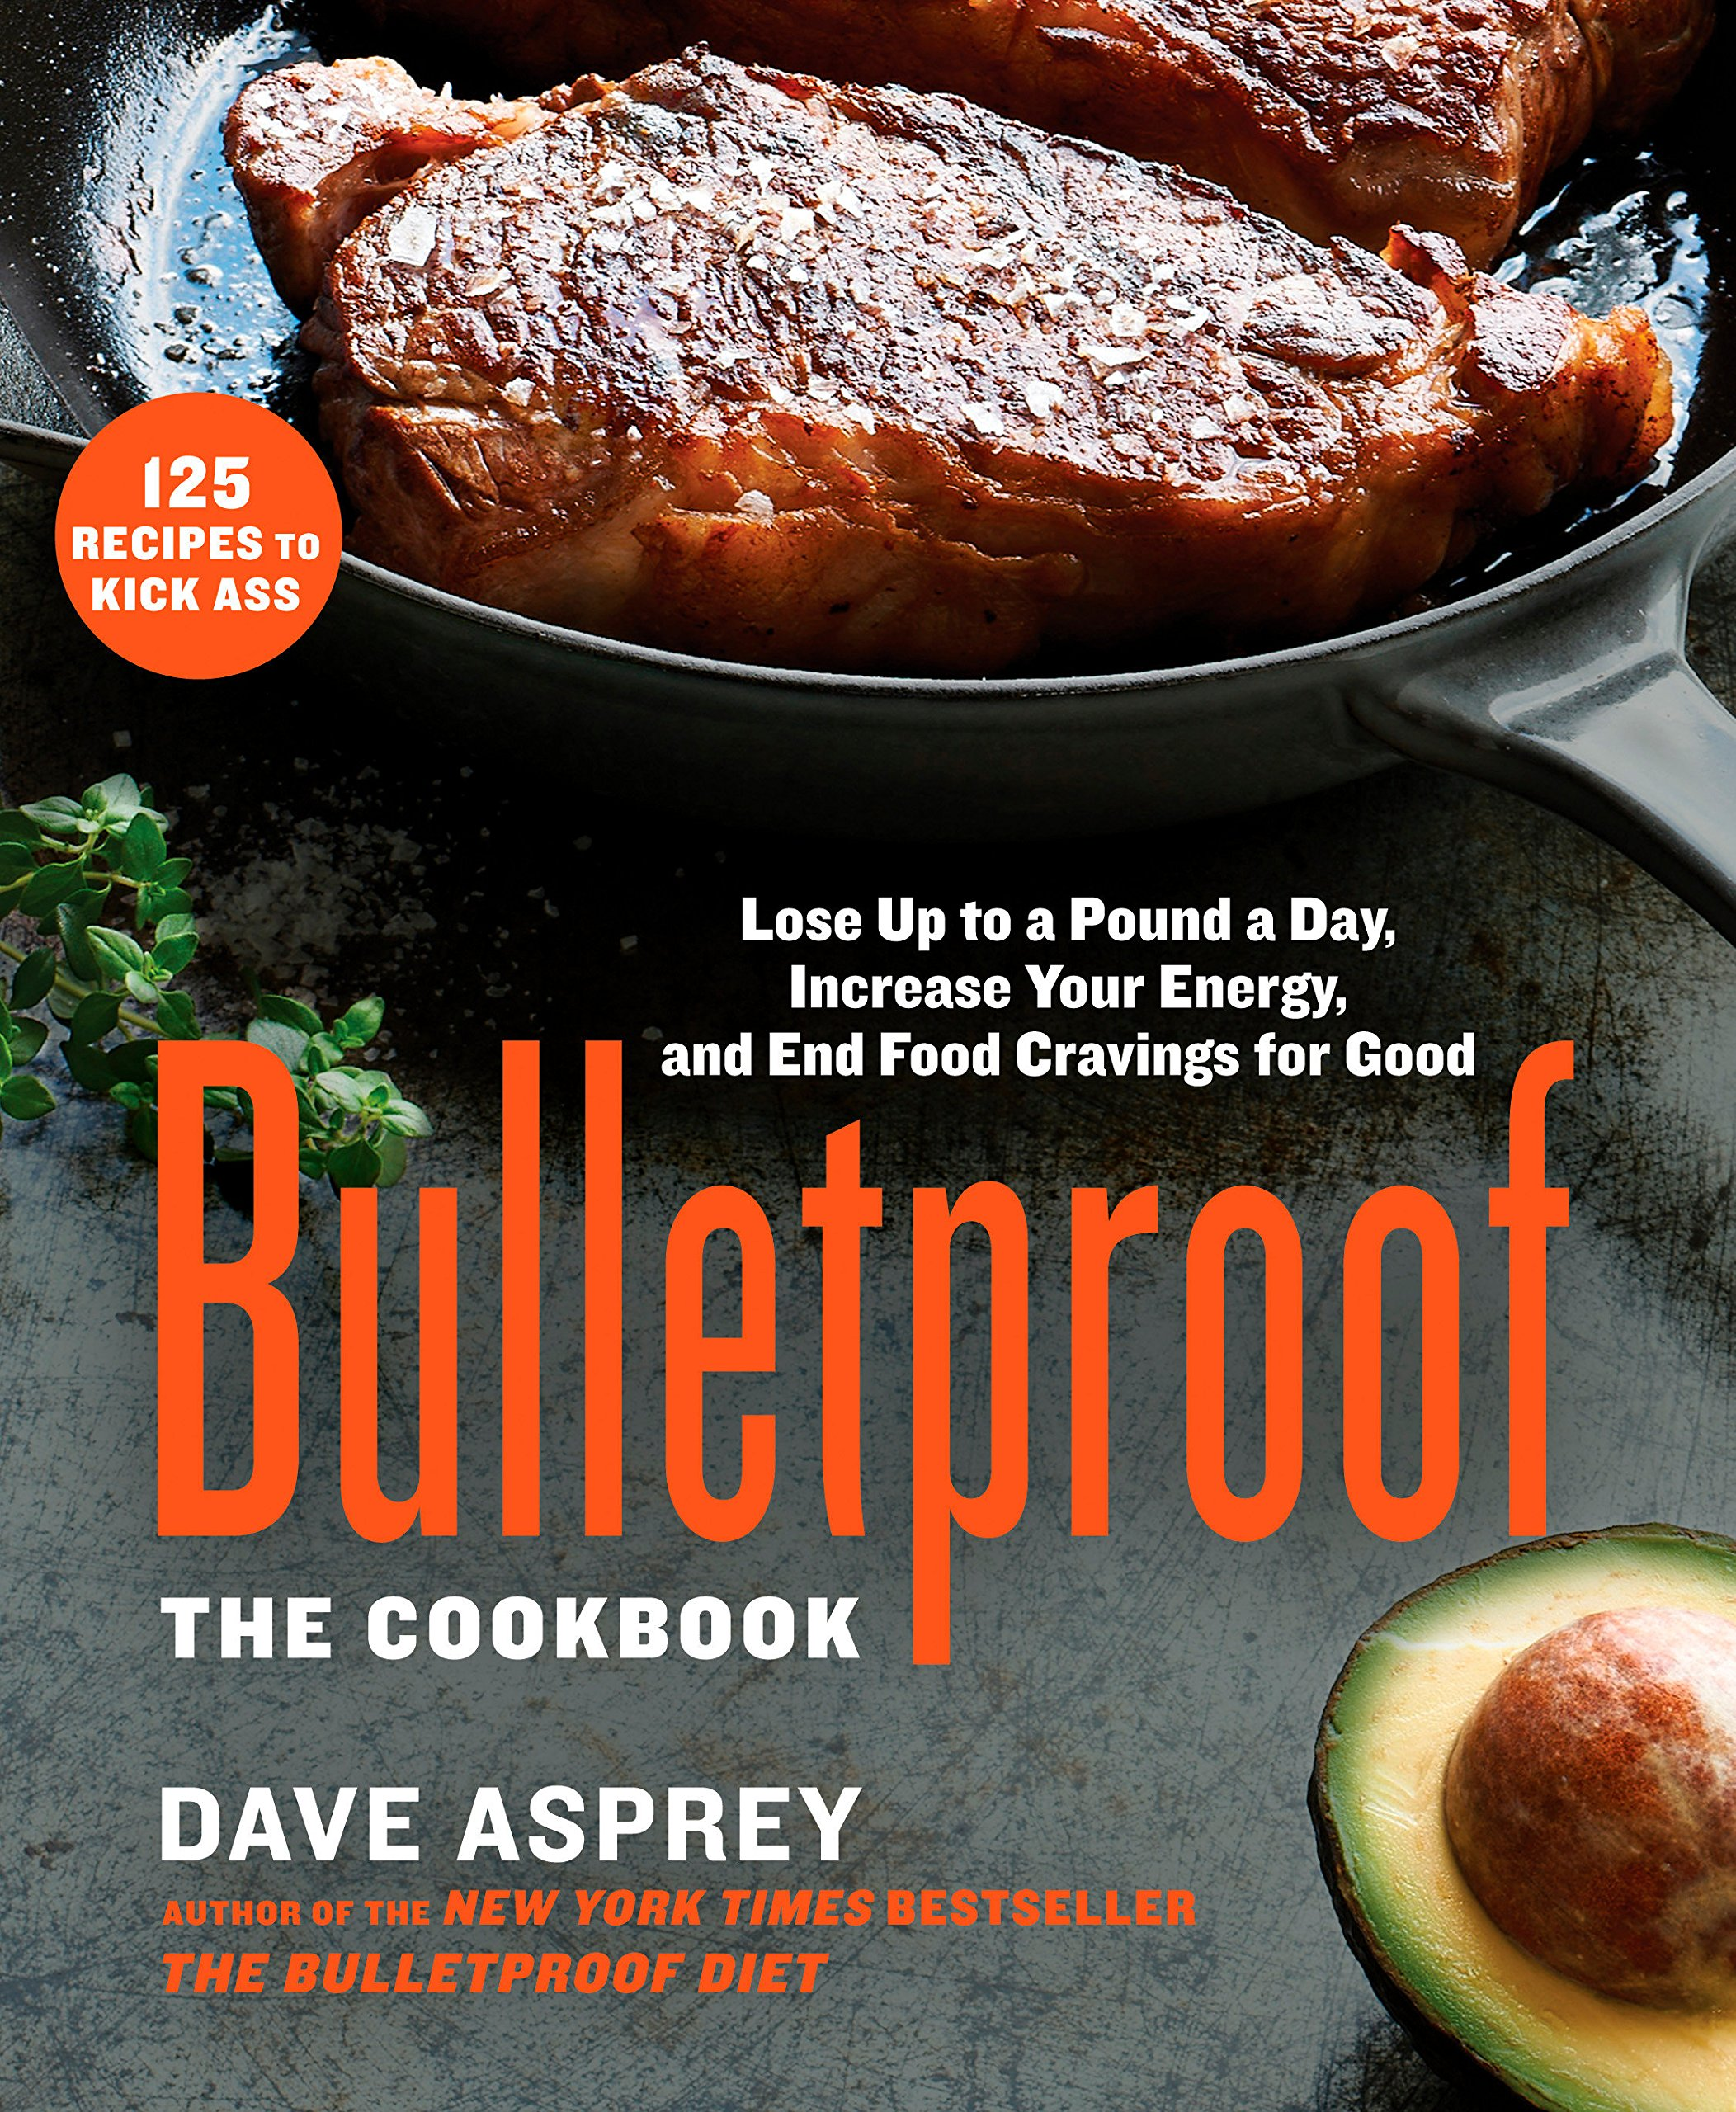 Bulletproof: The Cookbook: Lose Up to a Pound a Day, Increase Your Energy, and End Food Cravings for Good pdf epub